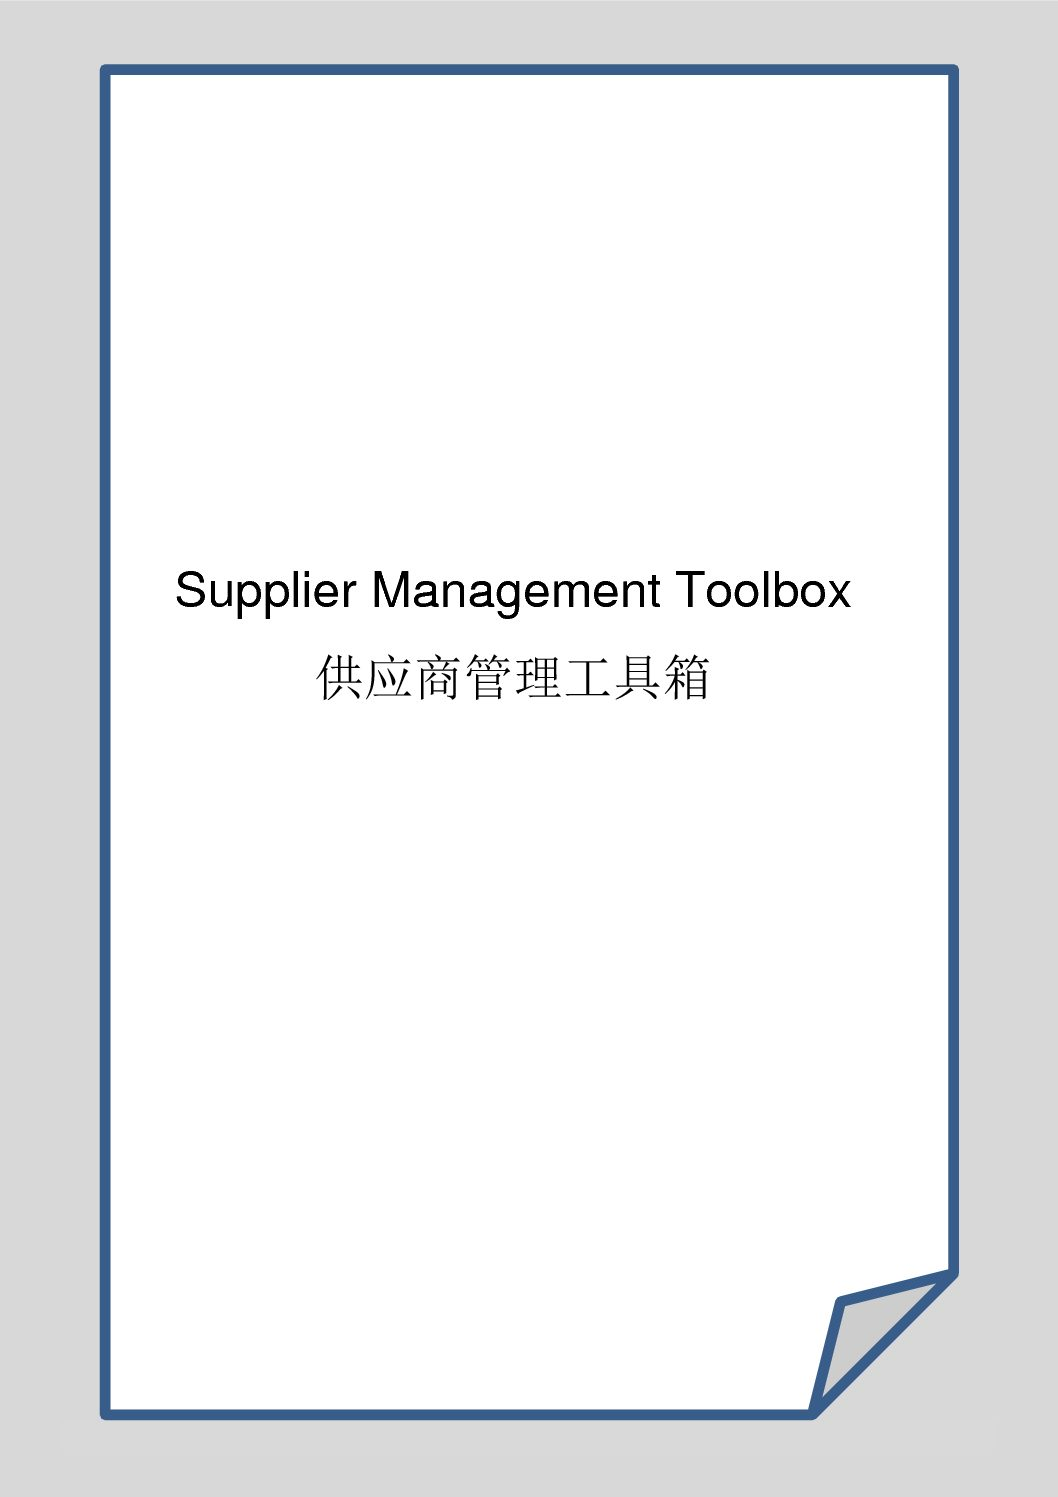 Supplier Management Toolbox